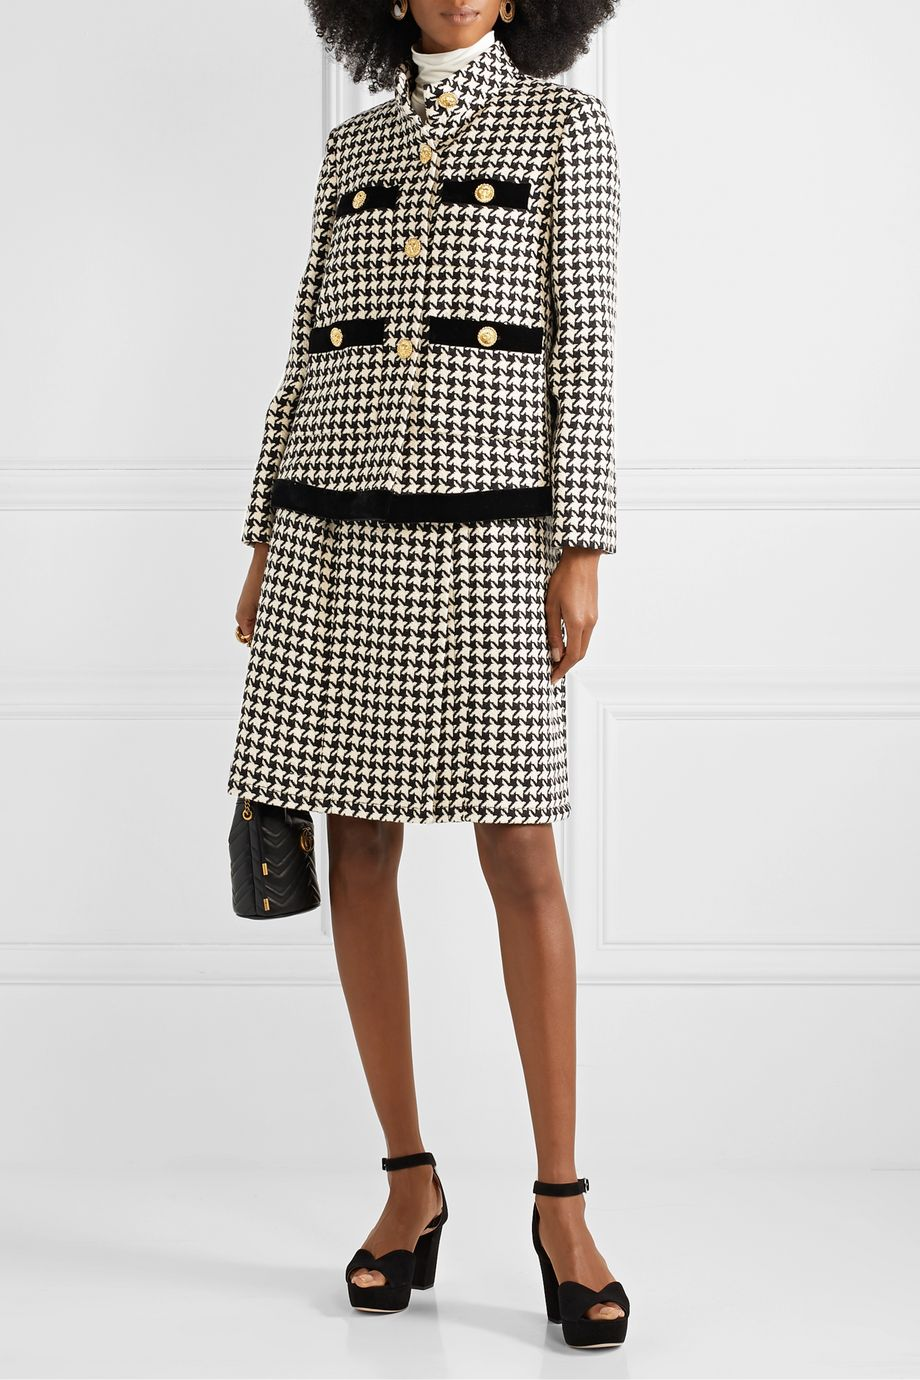 Gucci Houndstooth wool-blend tweed wrap skirt